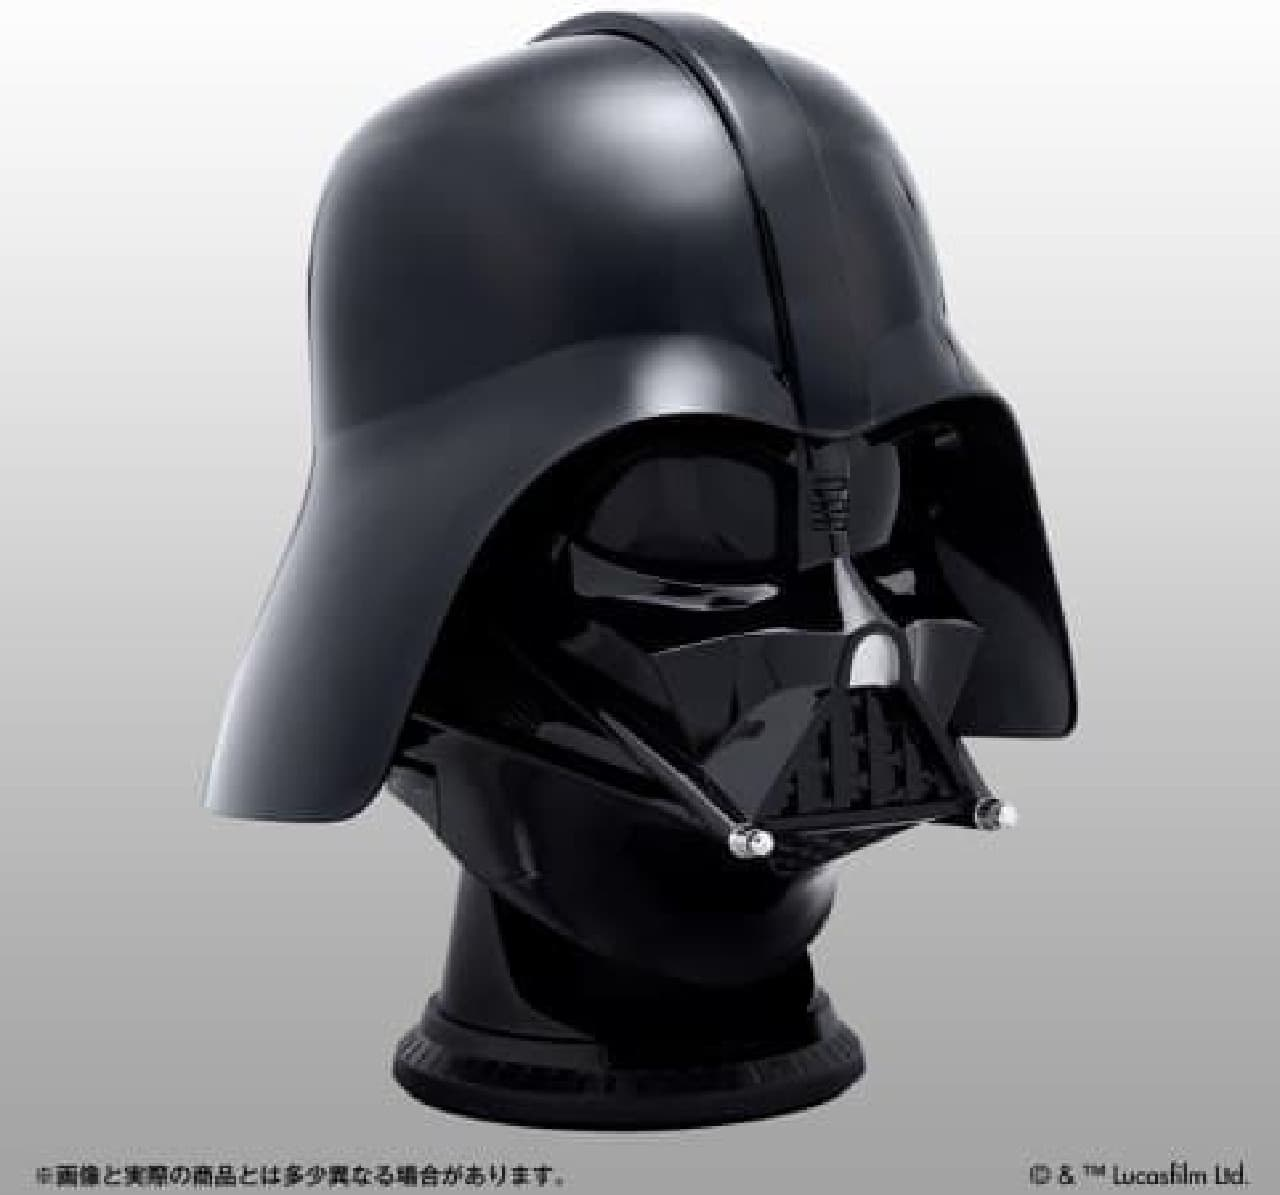 スター・ウォーズ「HELMET BLUETOOTH WIRELESS SPEAKER」